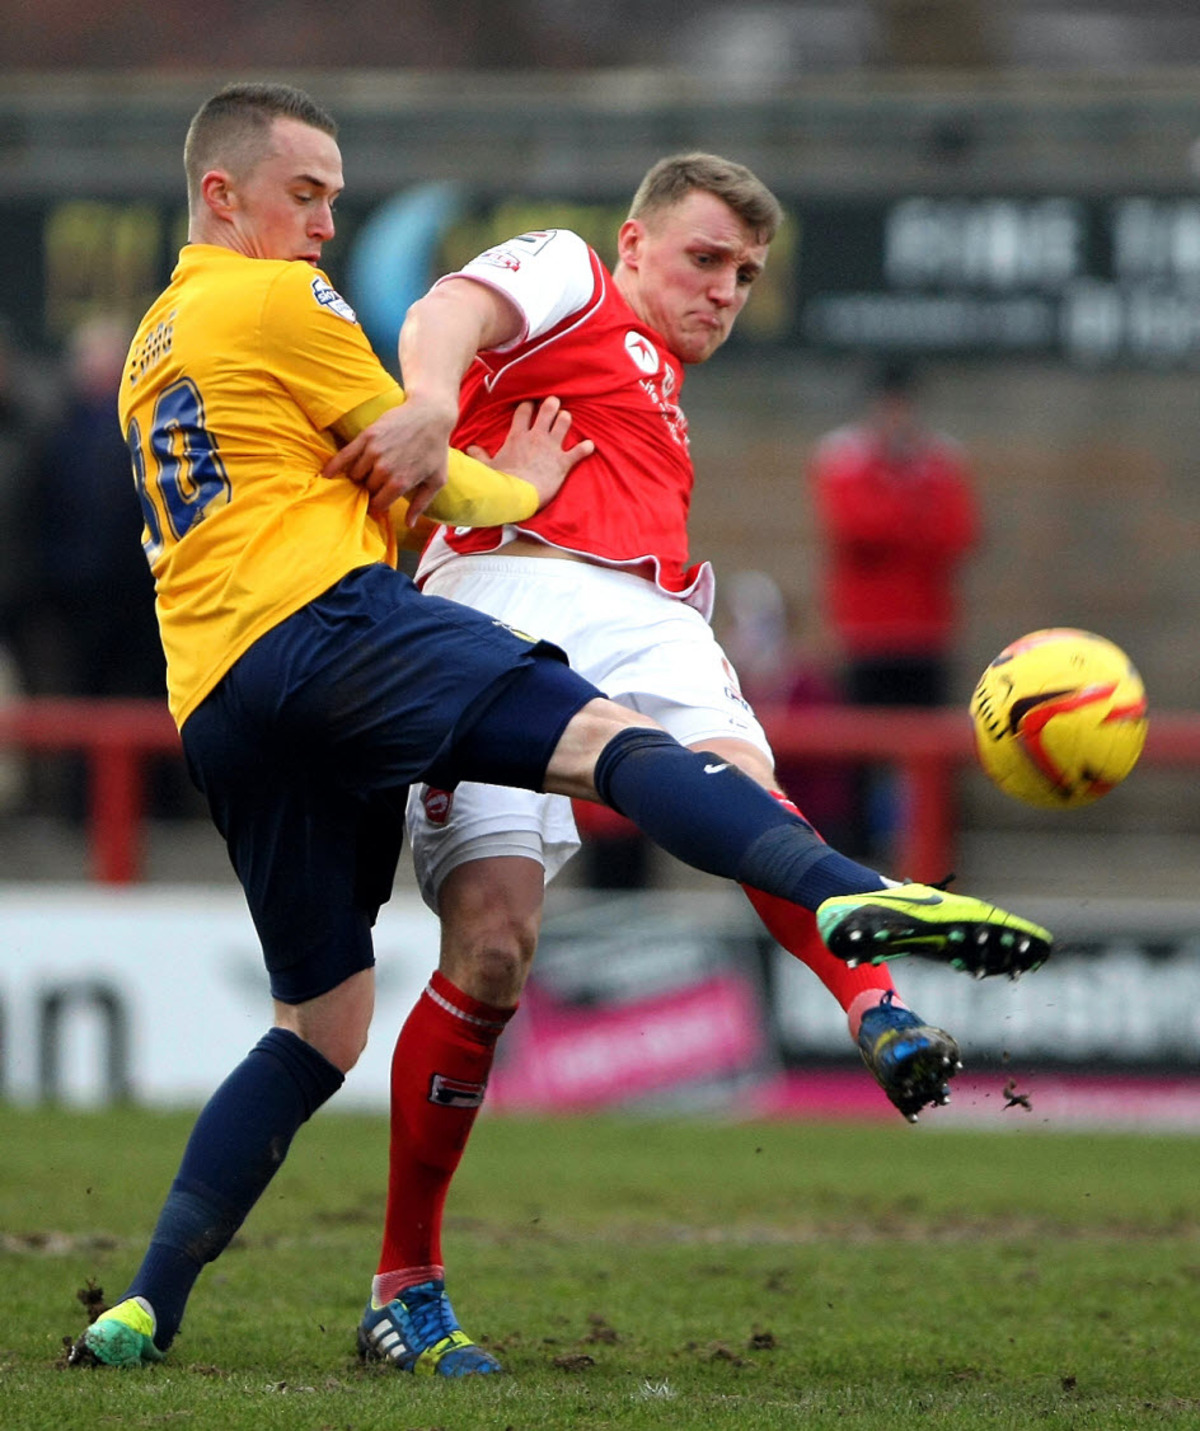 United youngster Sam Long tackles Morecambe's Jack Sampson during Saturday's 1-1 draw, but he is prepared to make way for senior players when they return from fitness